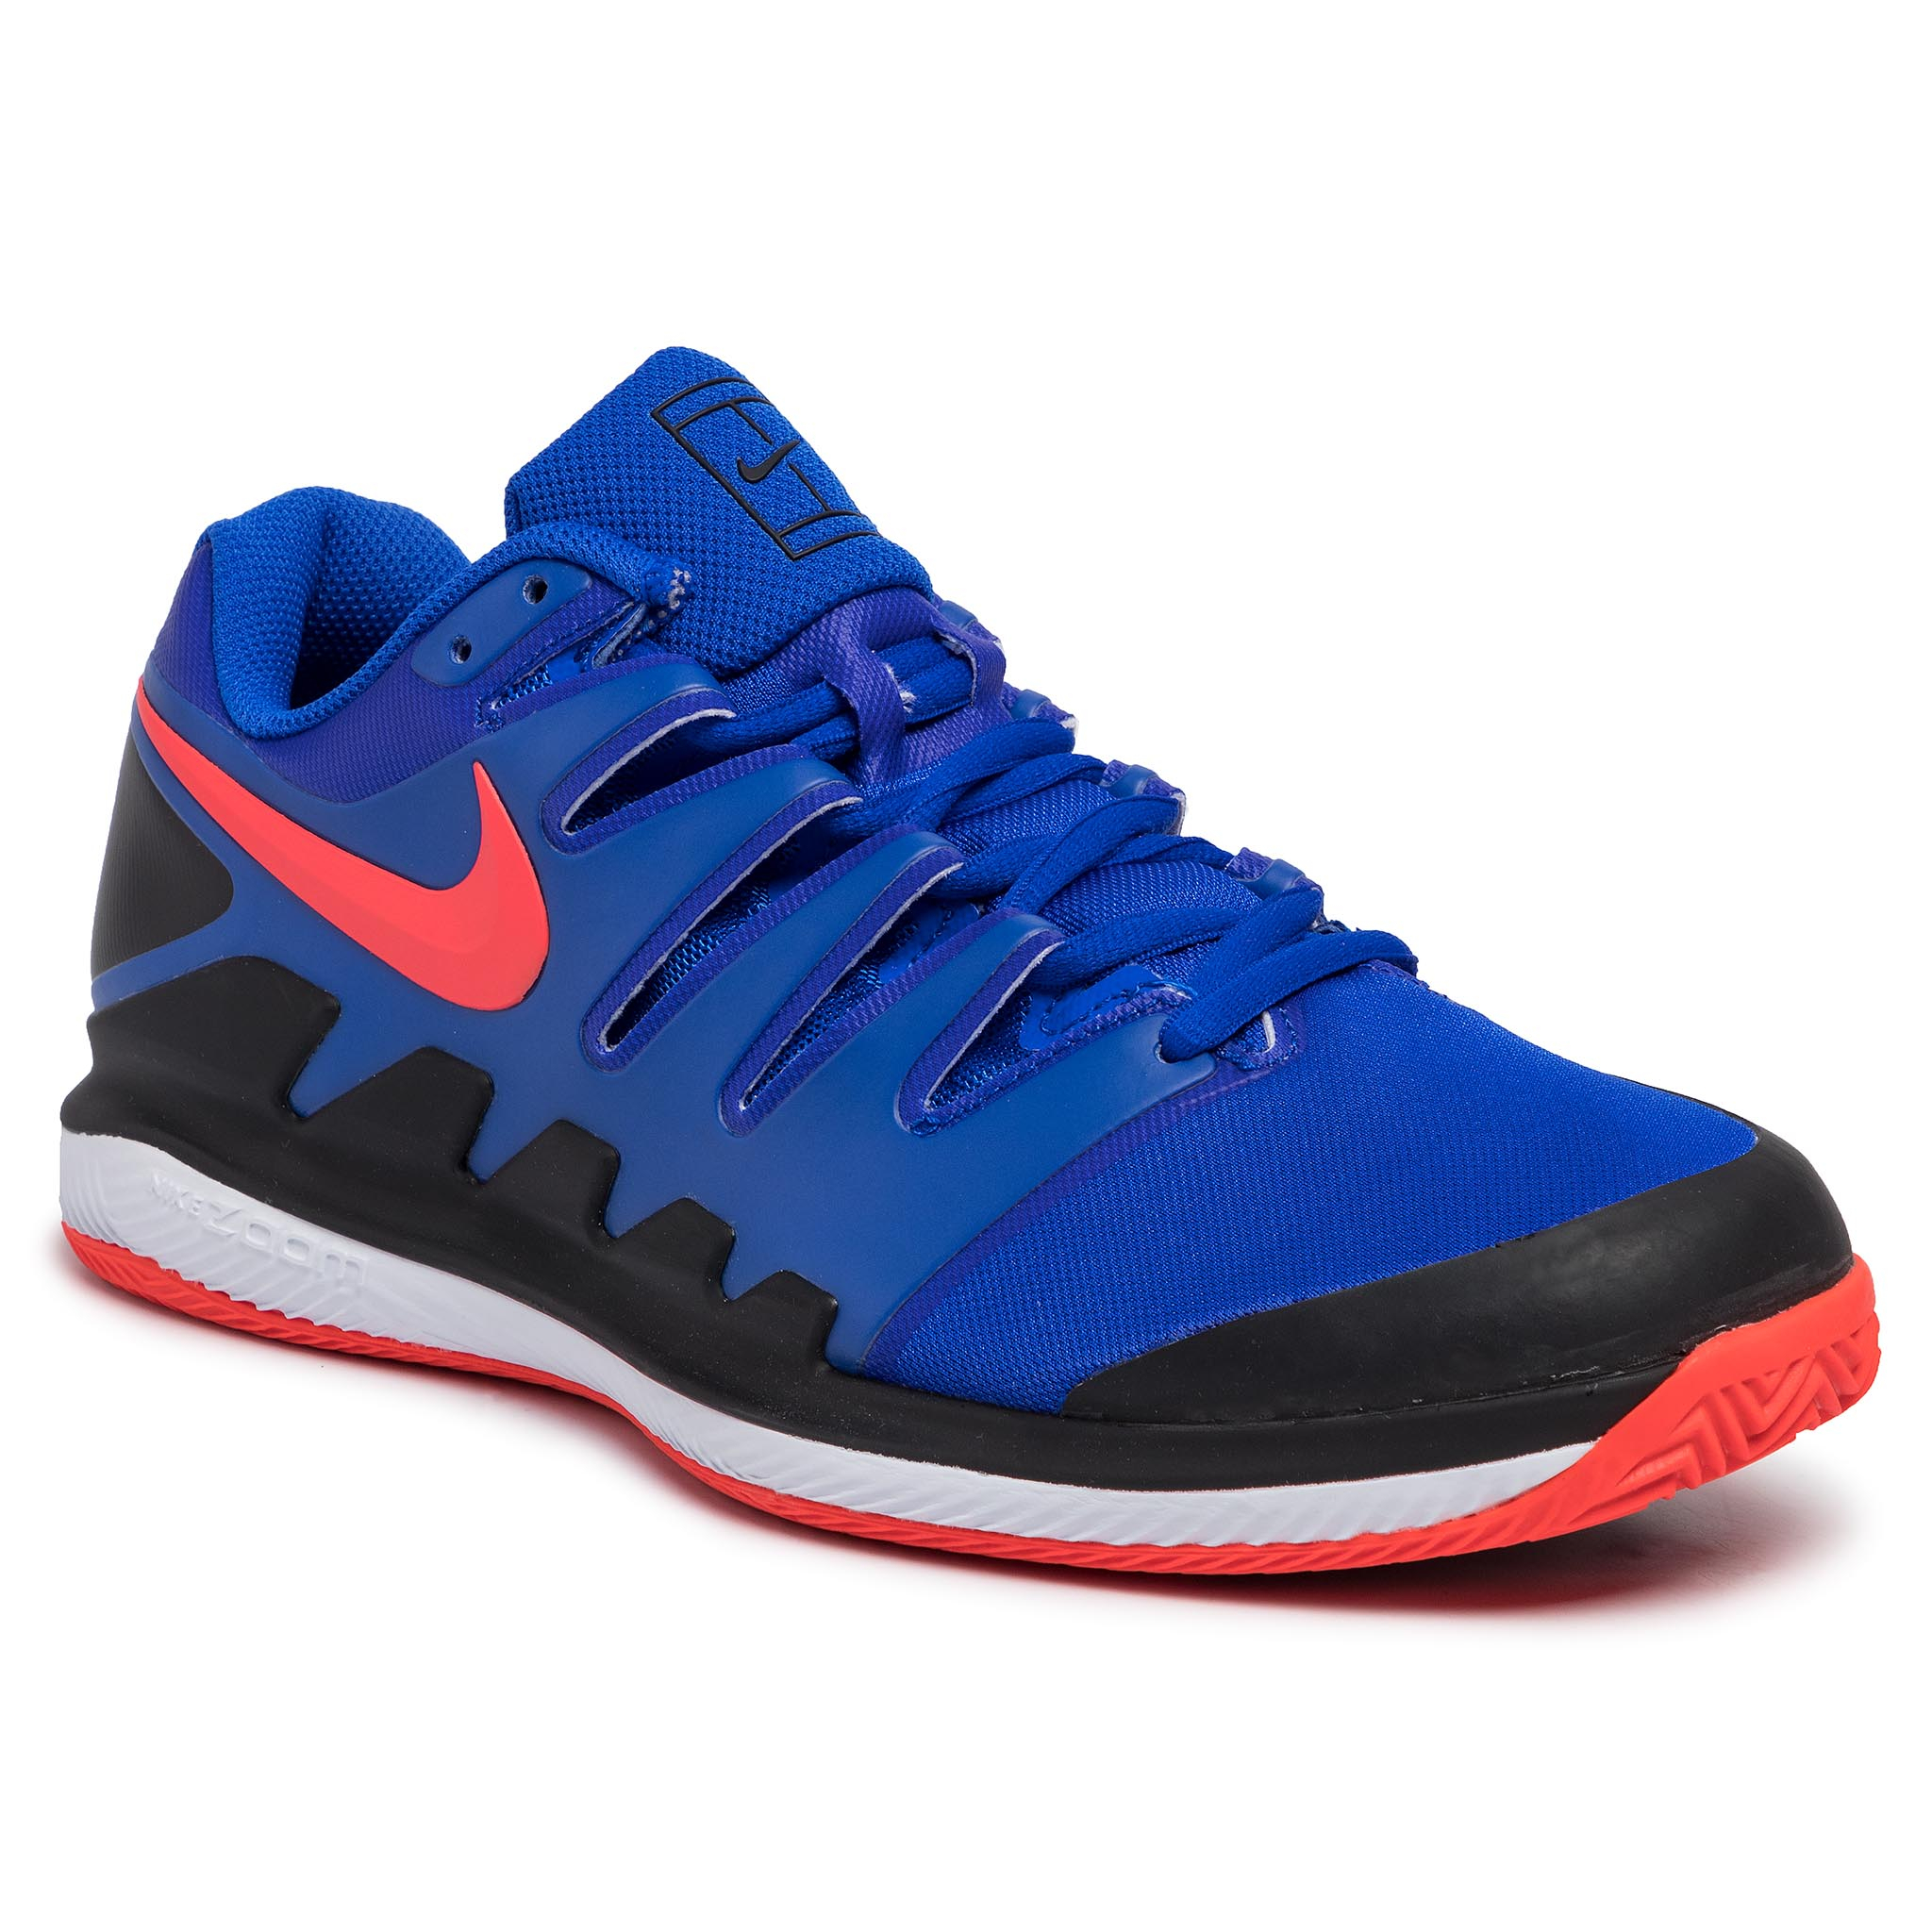 Pantofi NIKE - Air Zoom Vapor X Cly AA8021 402 Racer Blue/Bright Crimson